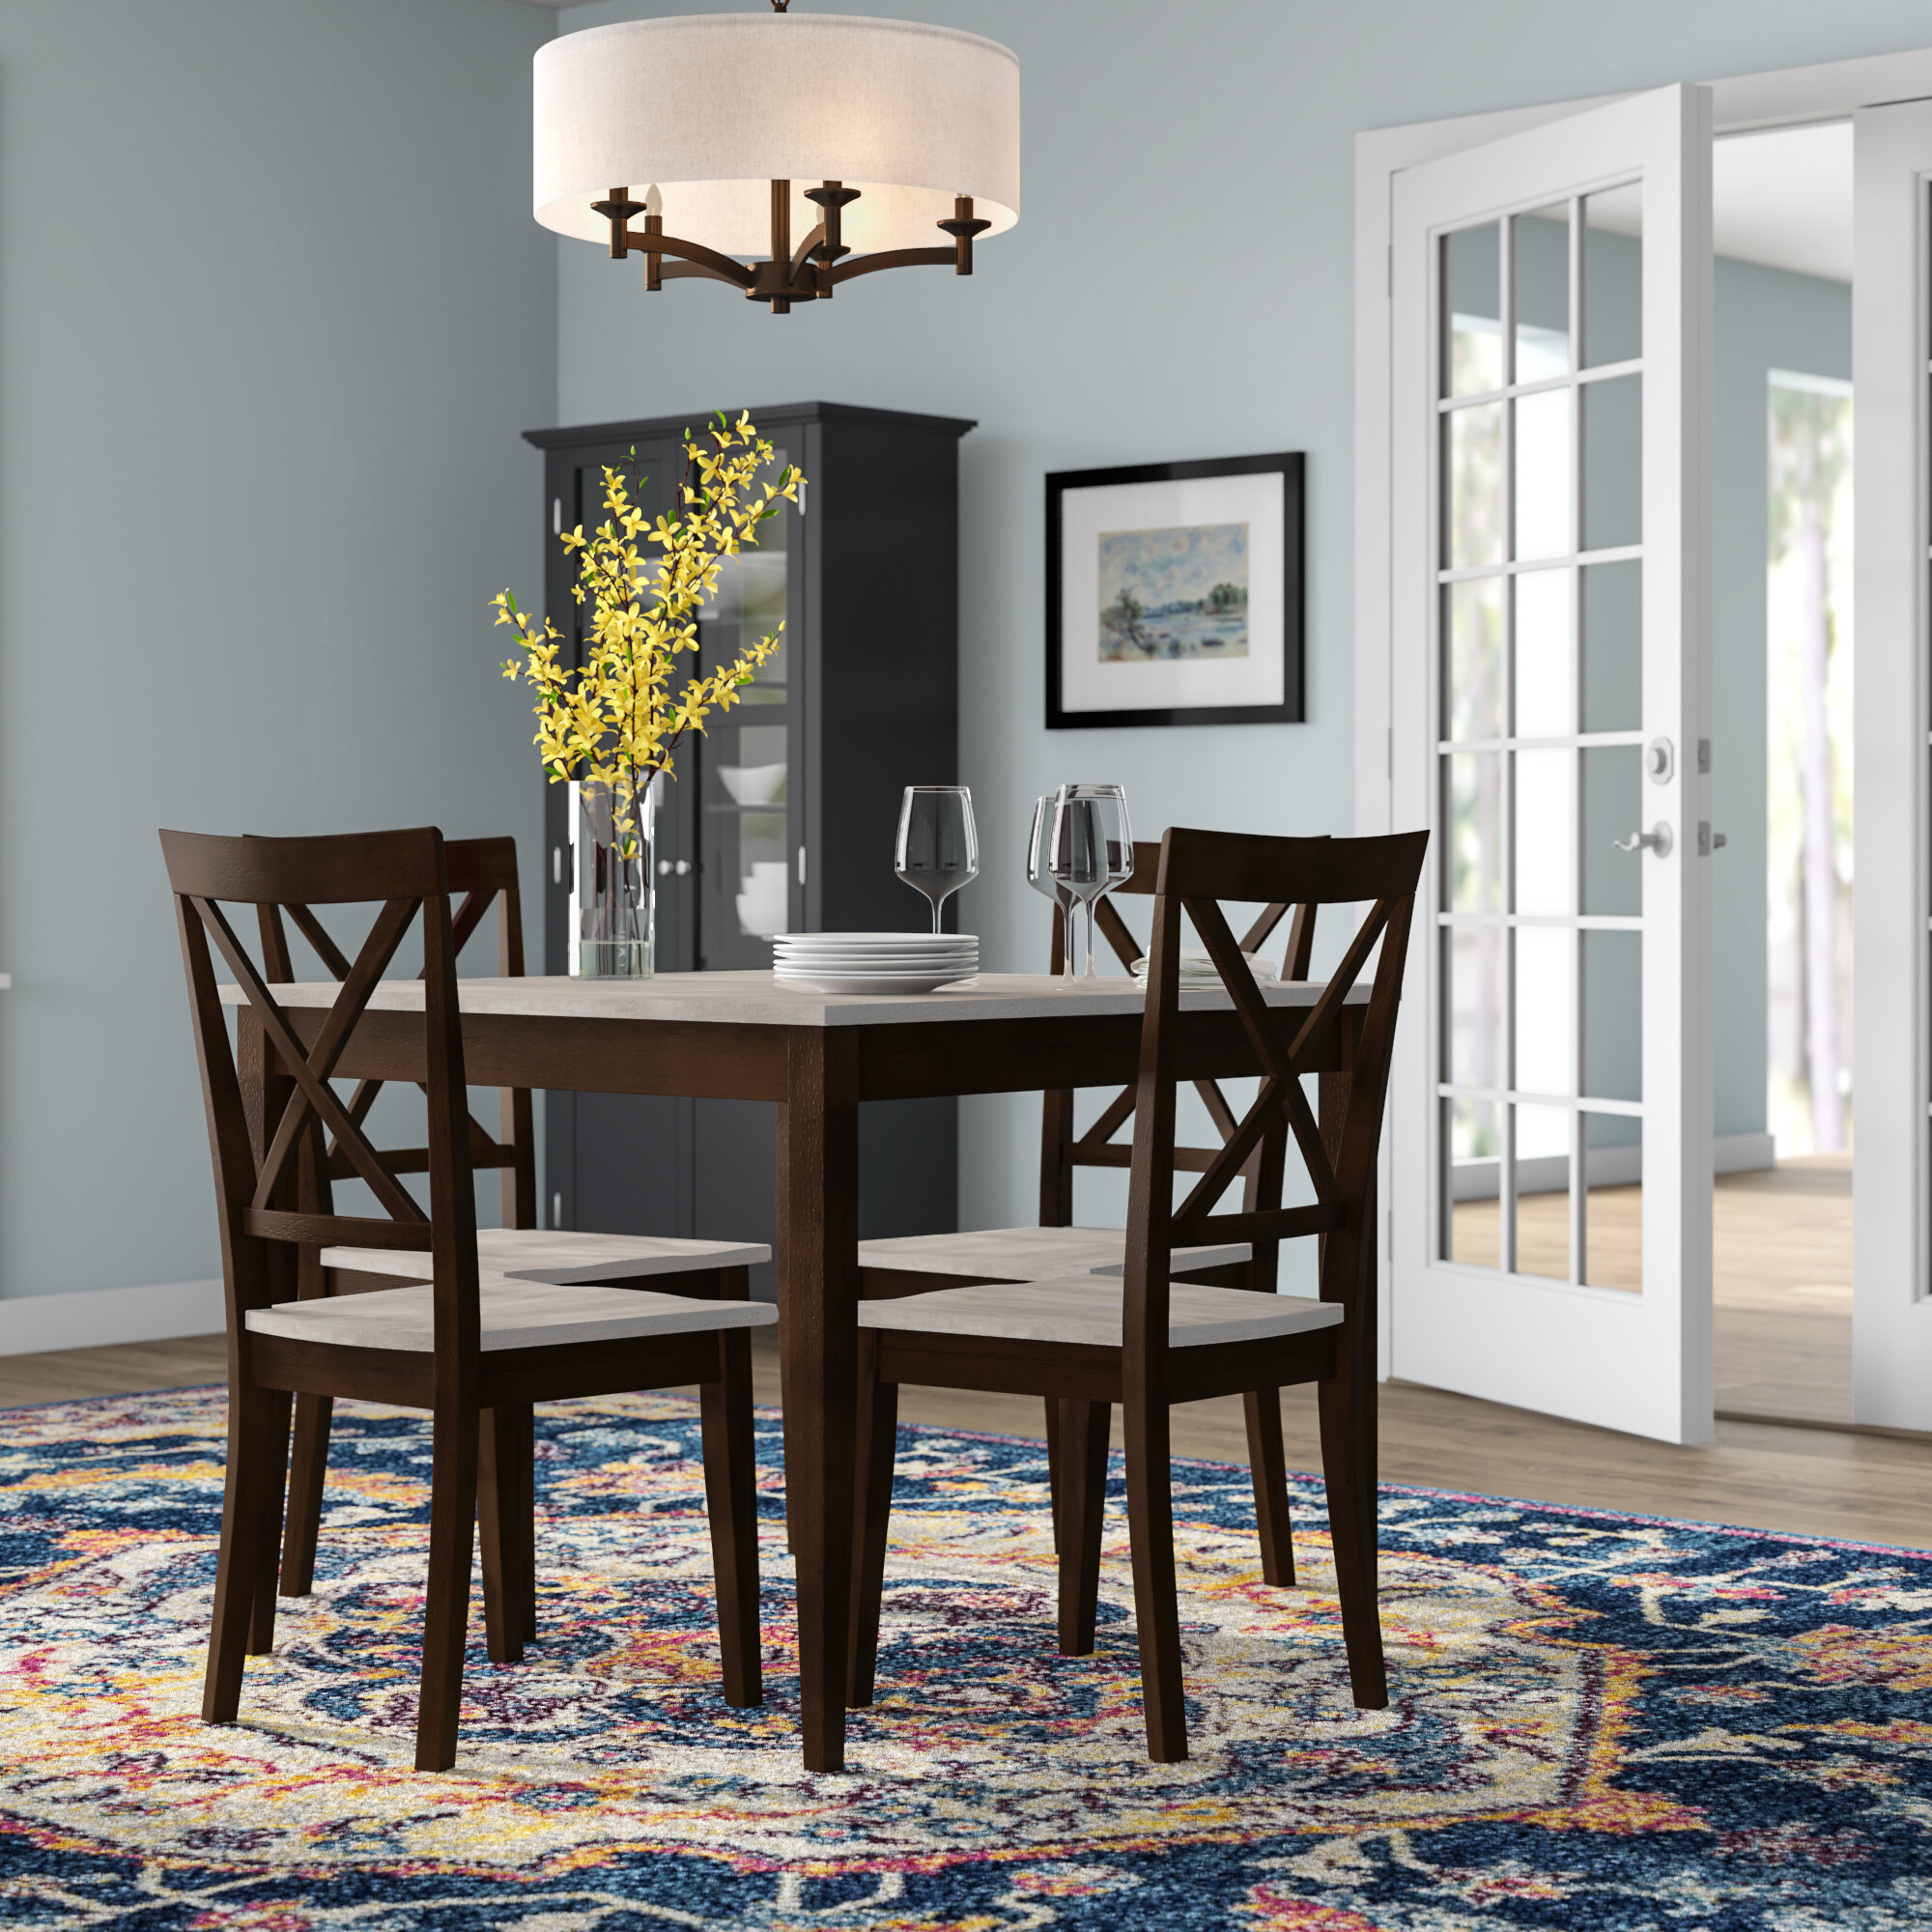 Tilley Rustic 5 Piece Dining Set In Most Current Kieffer 5 Piece Dining Sets (View 14 of 20)